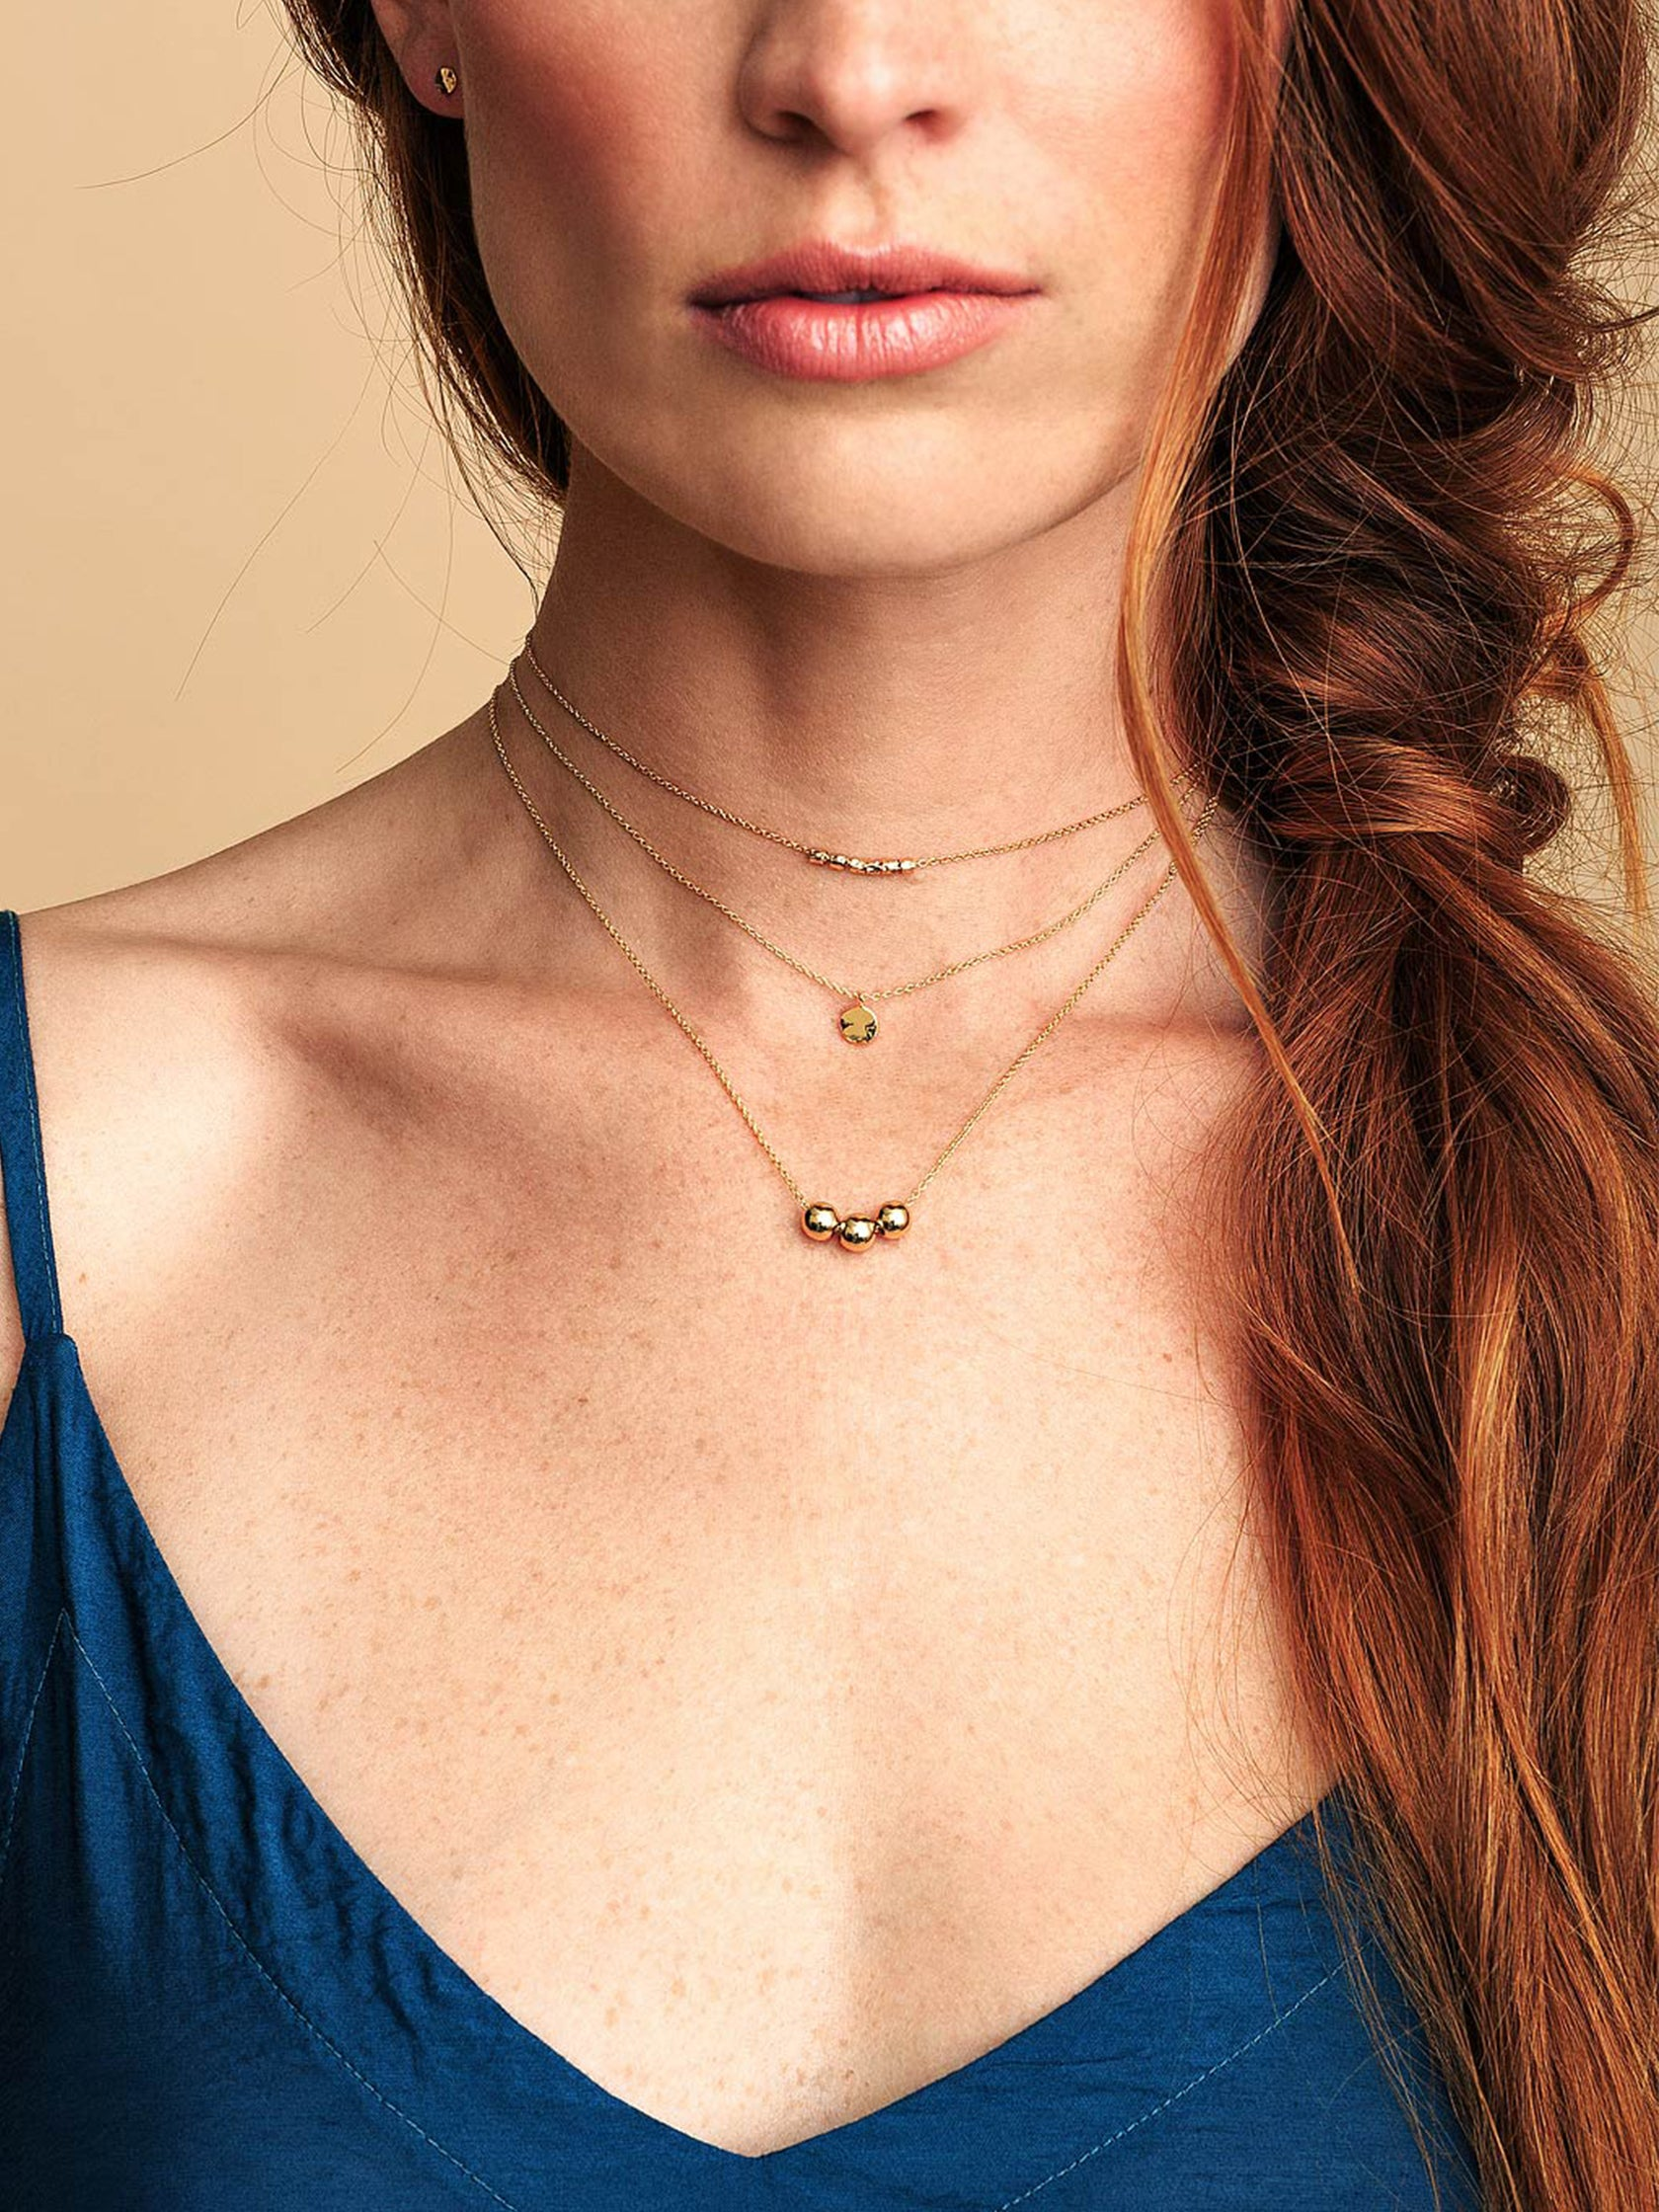 Woman wearing a necklace rental from Gorjana called Chloe Charm Adjustable Necklace